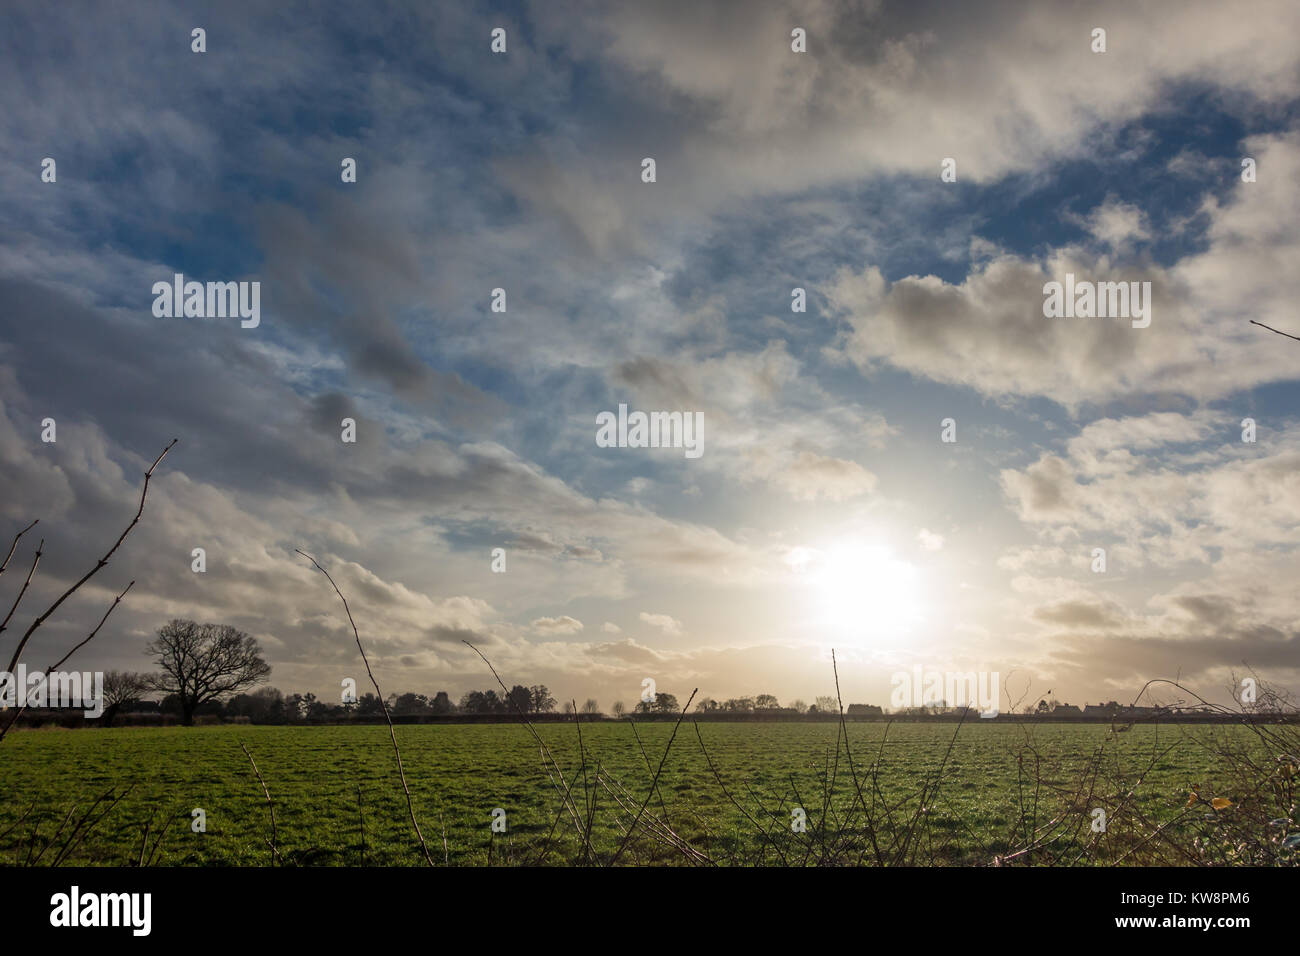 Wolverhampton, UK. 31st Dec 2017. UK Weather: The sun peaks through the clouds at the end of the day after a grey - Stock Image